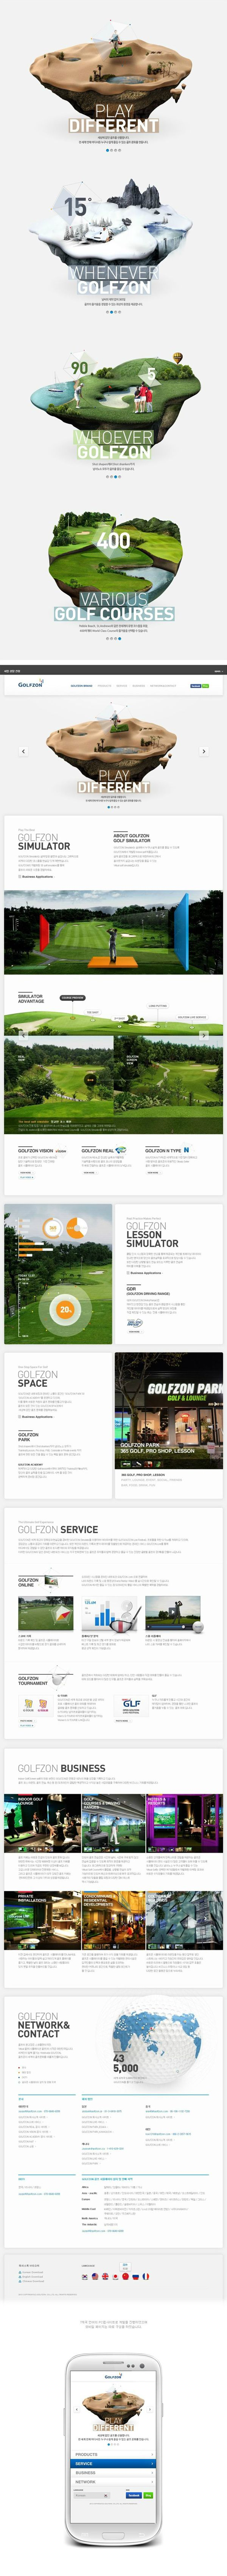 GolfZone Global Website Design by Plus X, via Behance